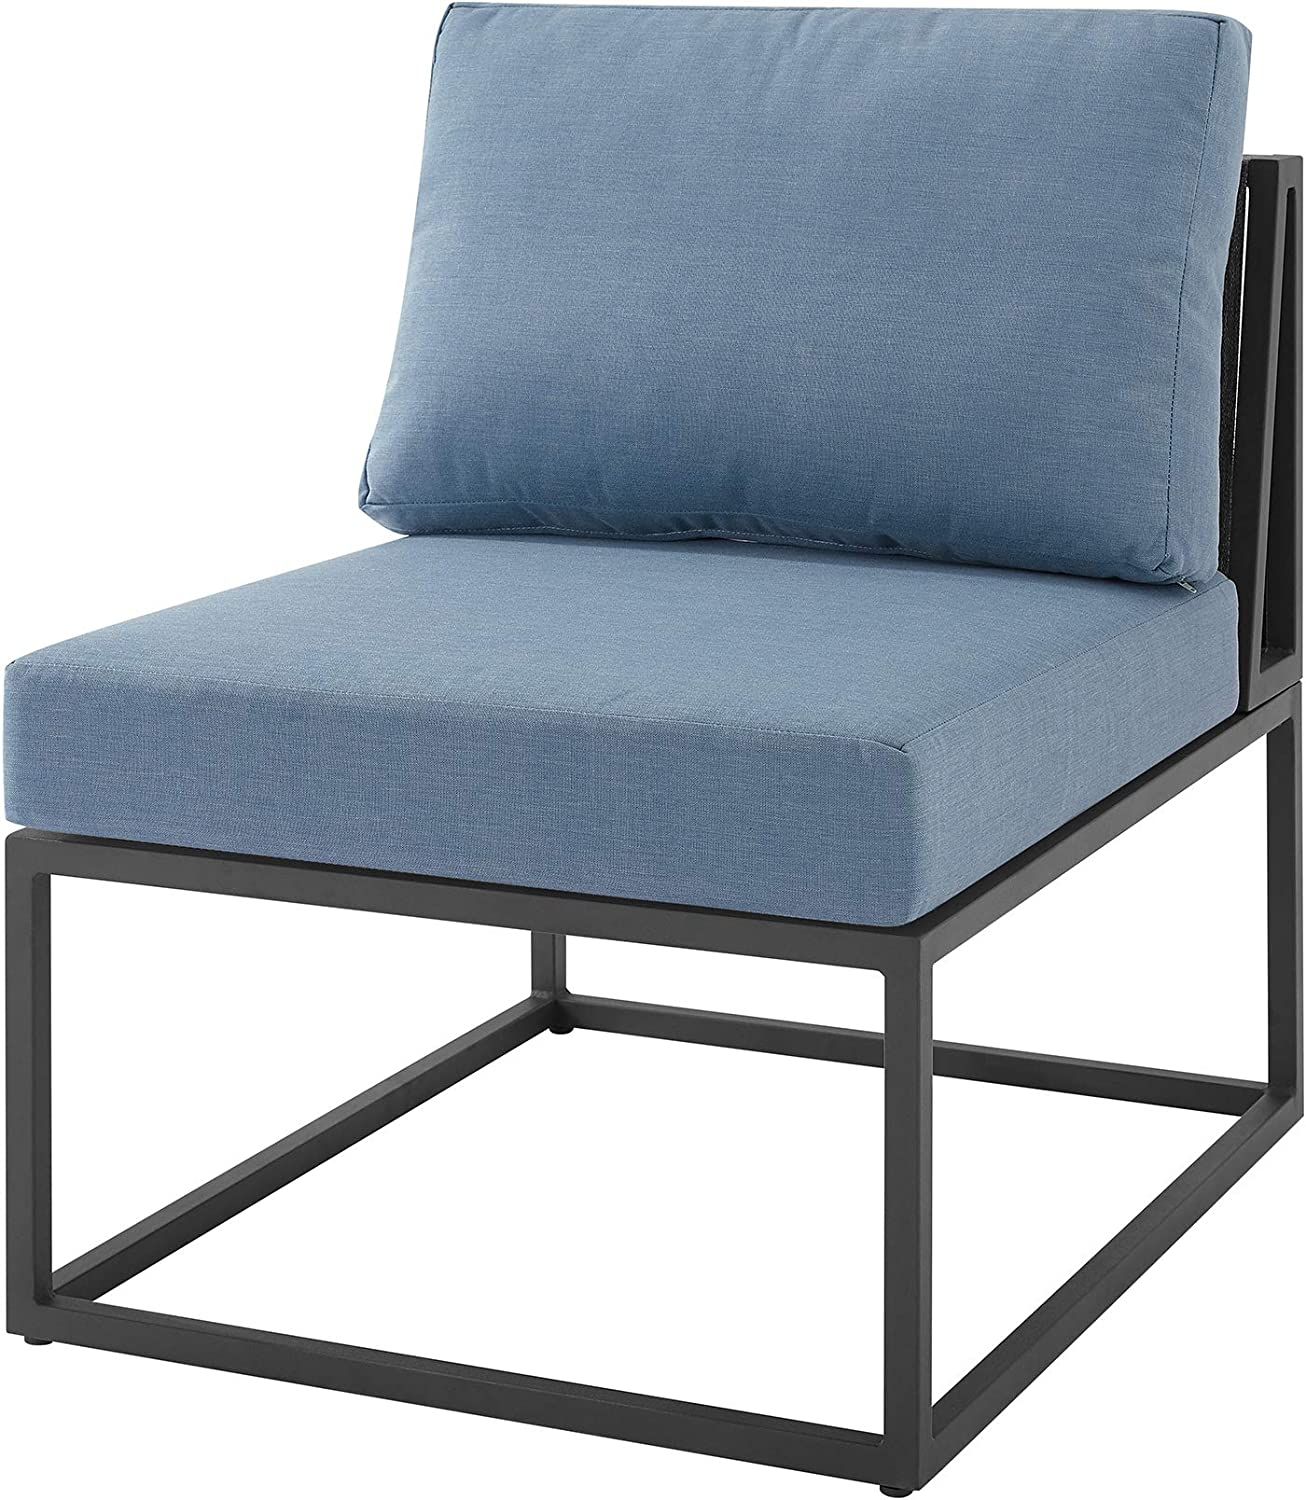 Walker Edison Furniture AZRTRINCHBU Outdoor Patio Metal Modern Modular Side Chair with Cushions, Blue